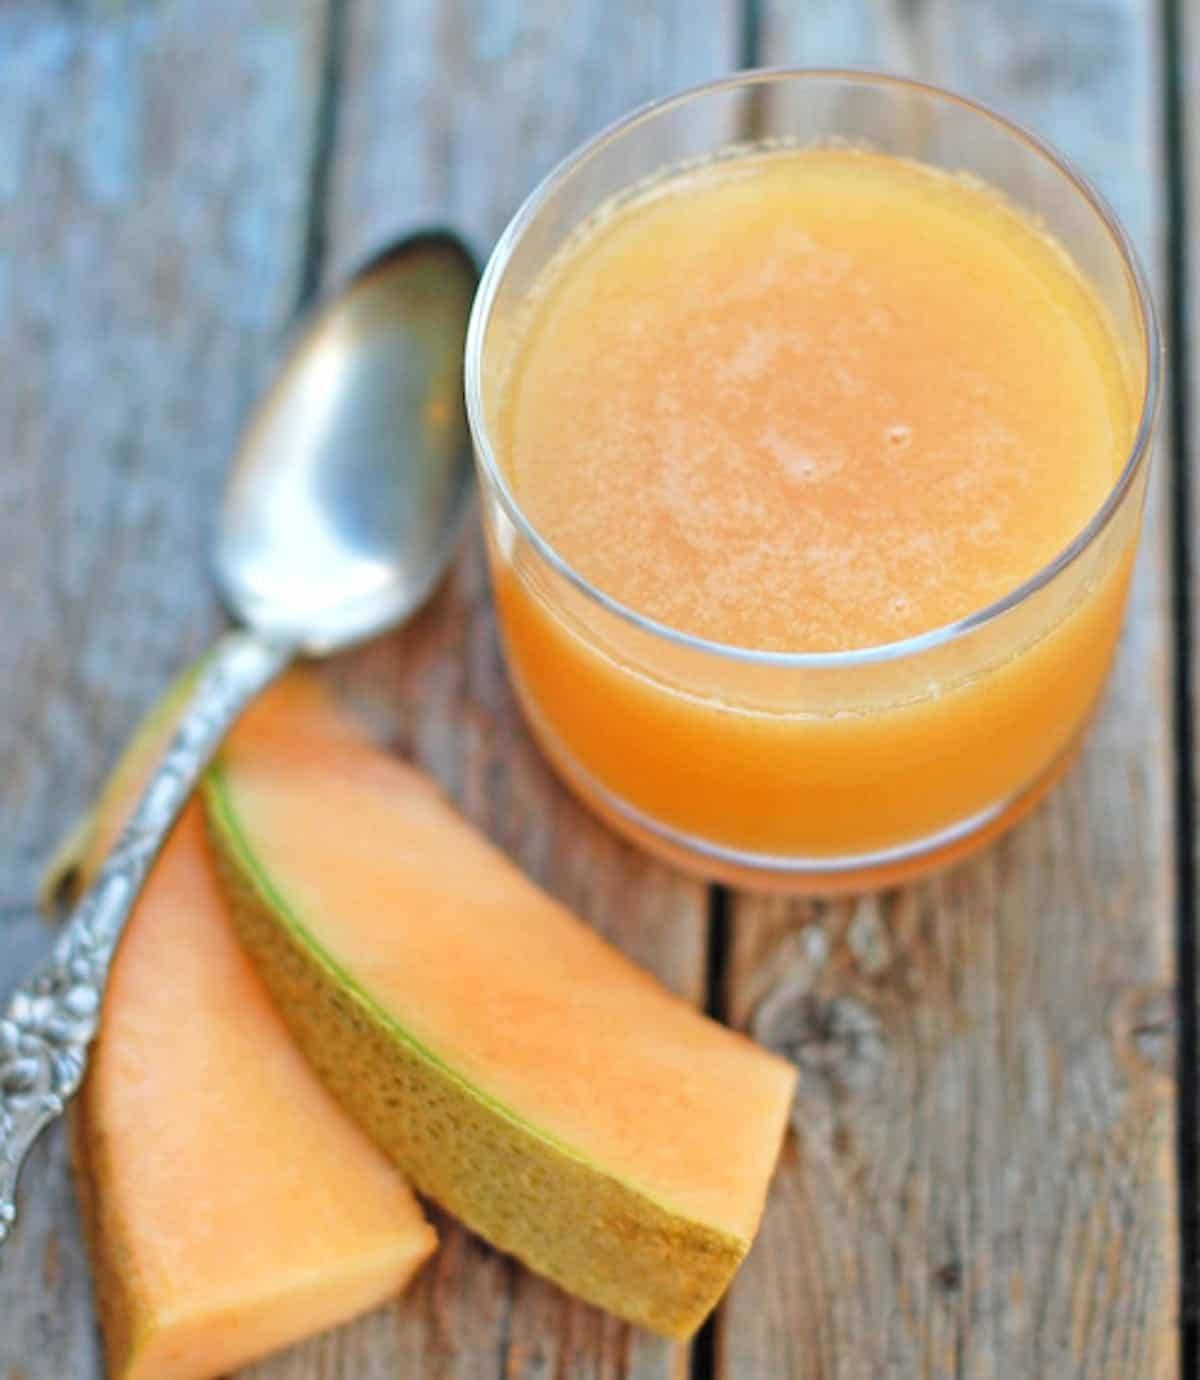 Ginger Melon Chiller in a glass with cantaloupe and a spoon.